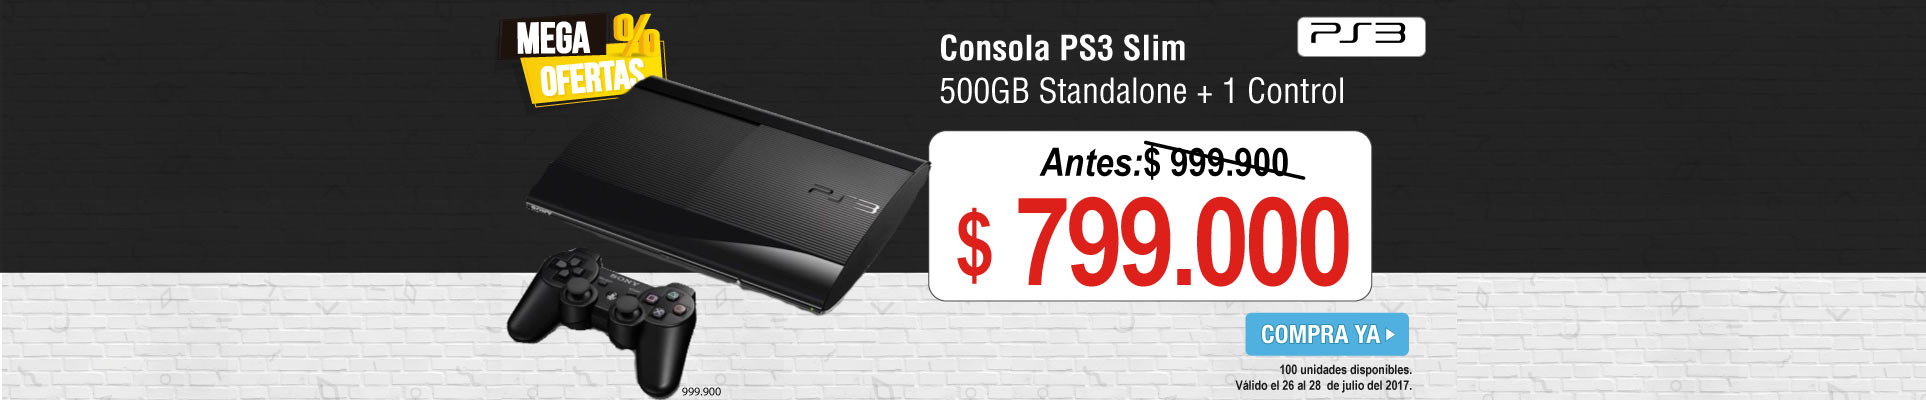 Consola PS3 Slim 500GB Standalone + 1 Control DualShock 3 -banner principal